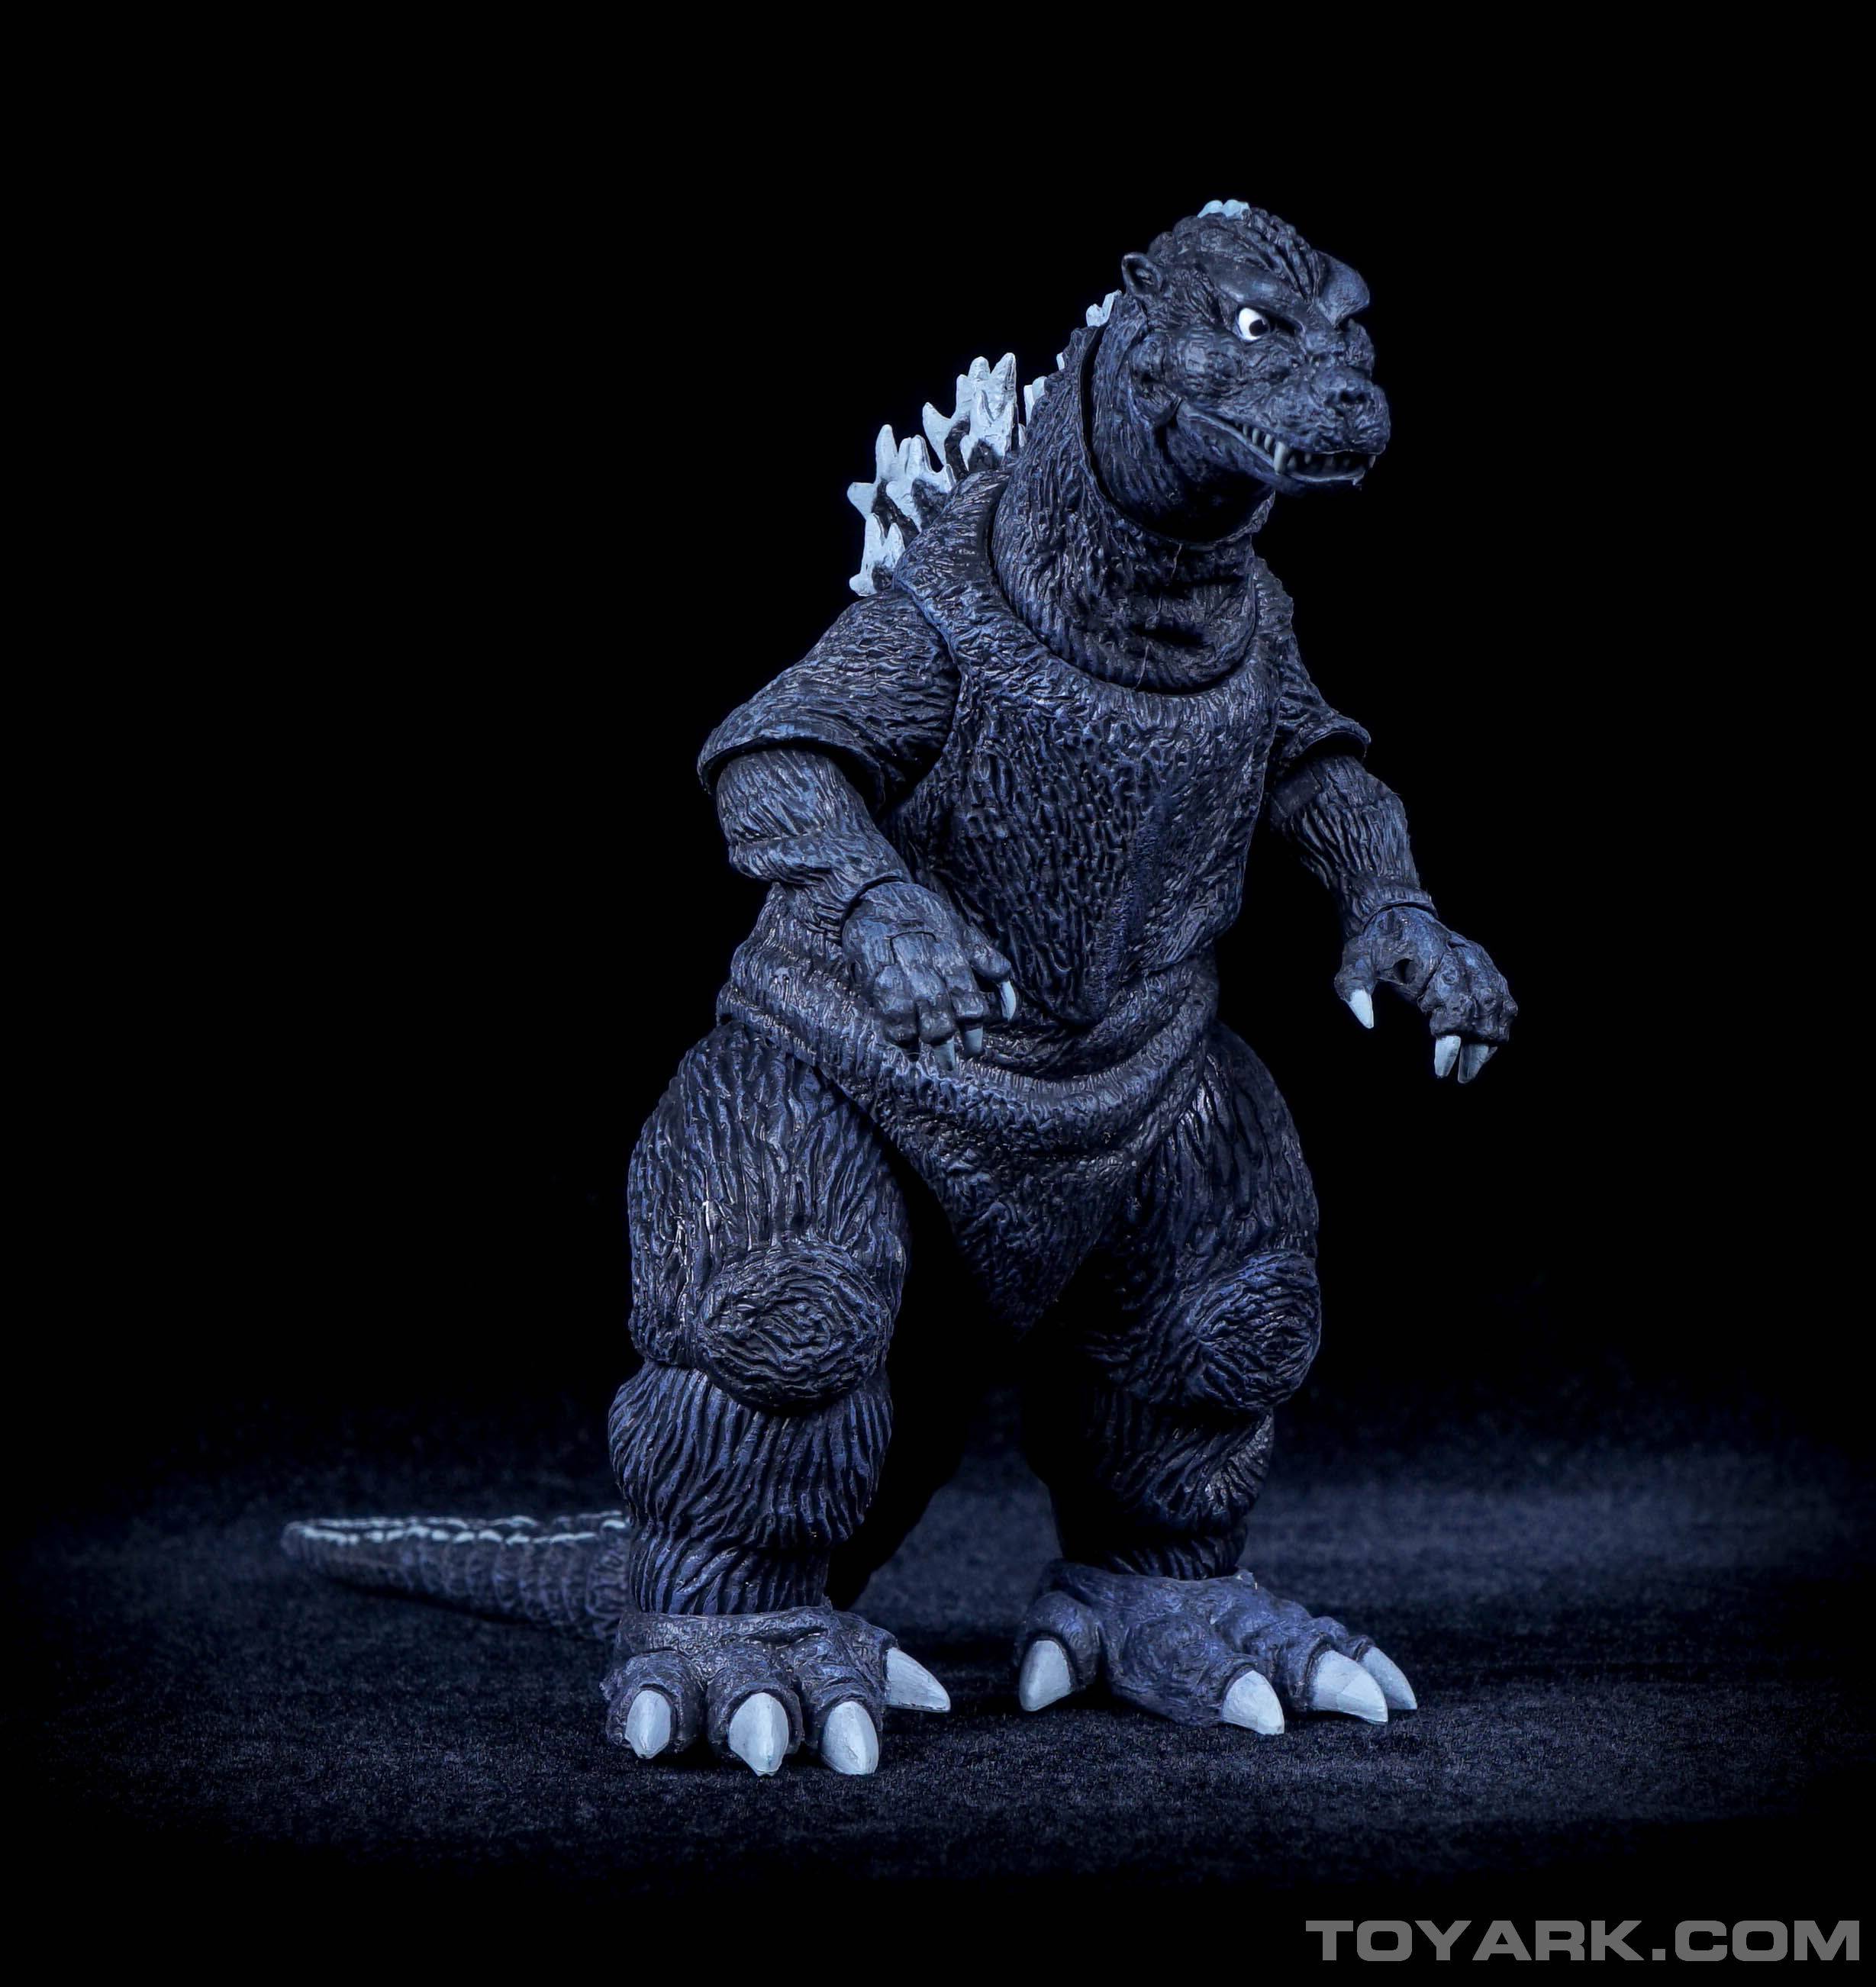 http://news.toyark.com/wp-content/uploads/sites/4/2015/09/NECA-1954-Godzilla-008.jpg